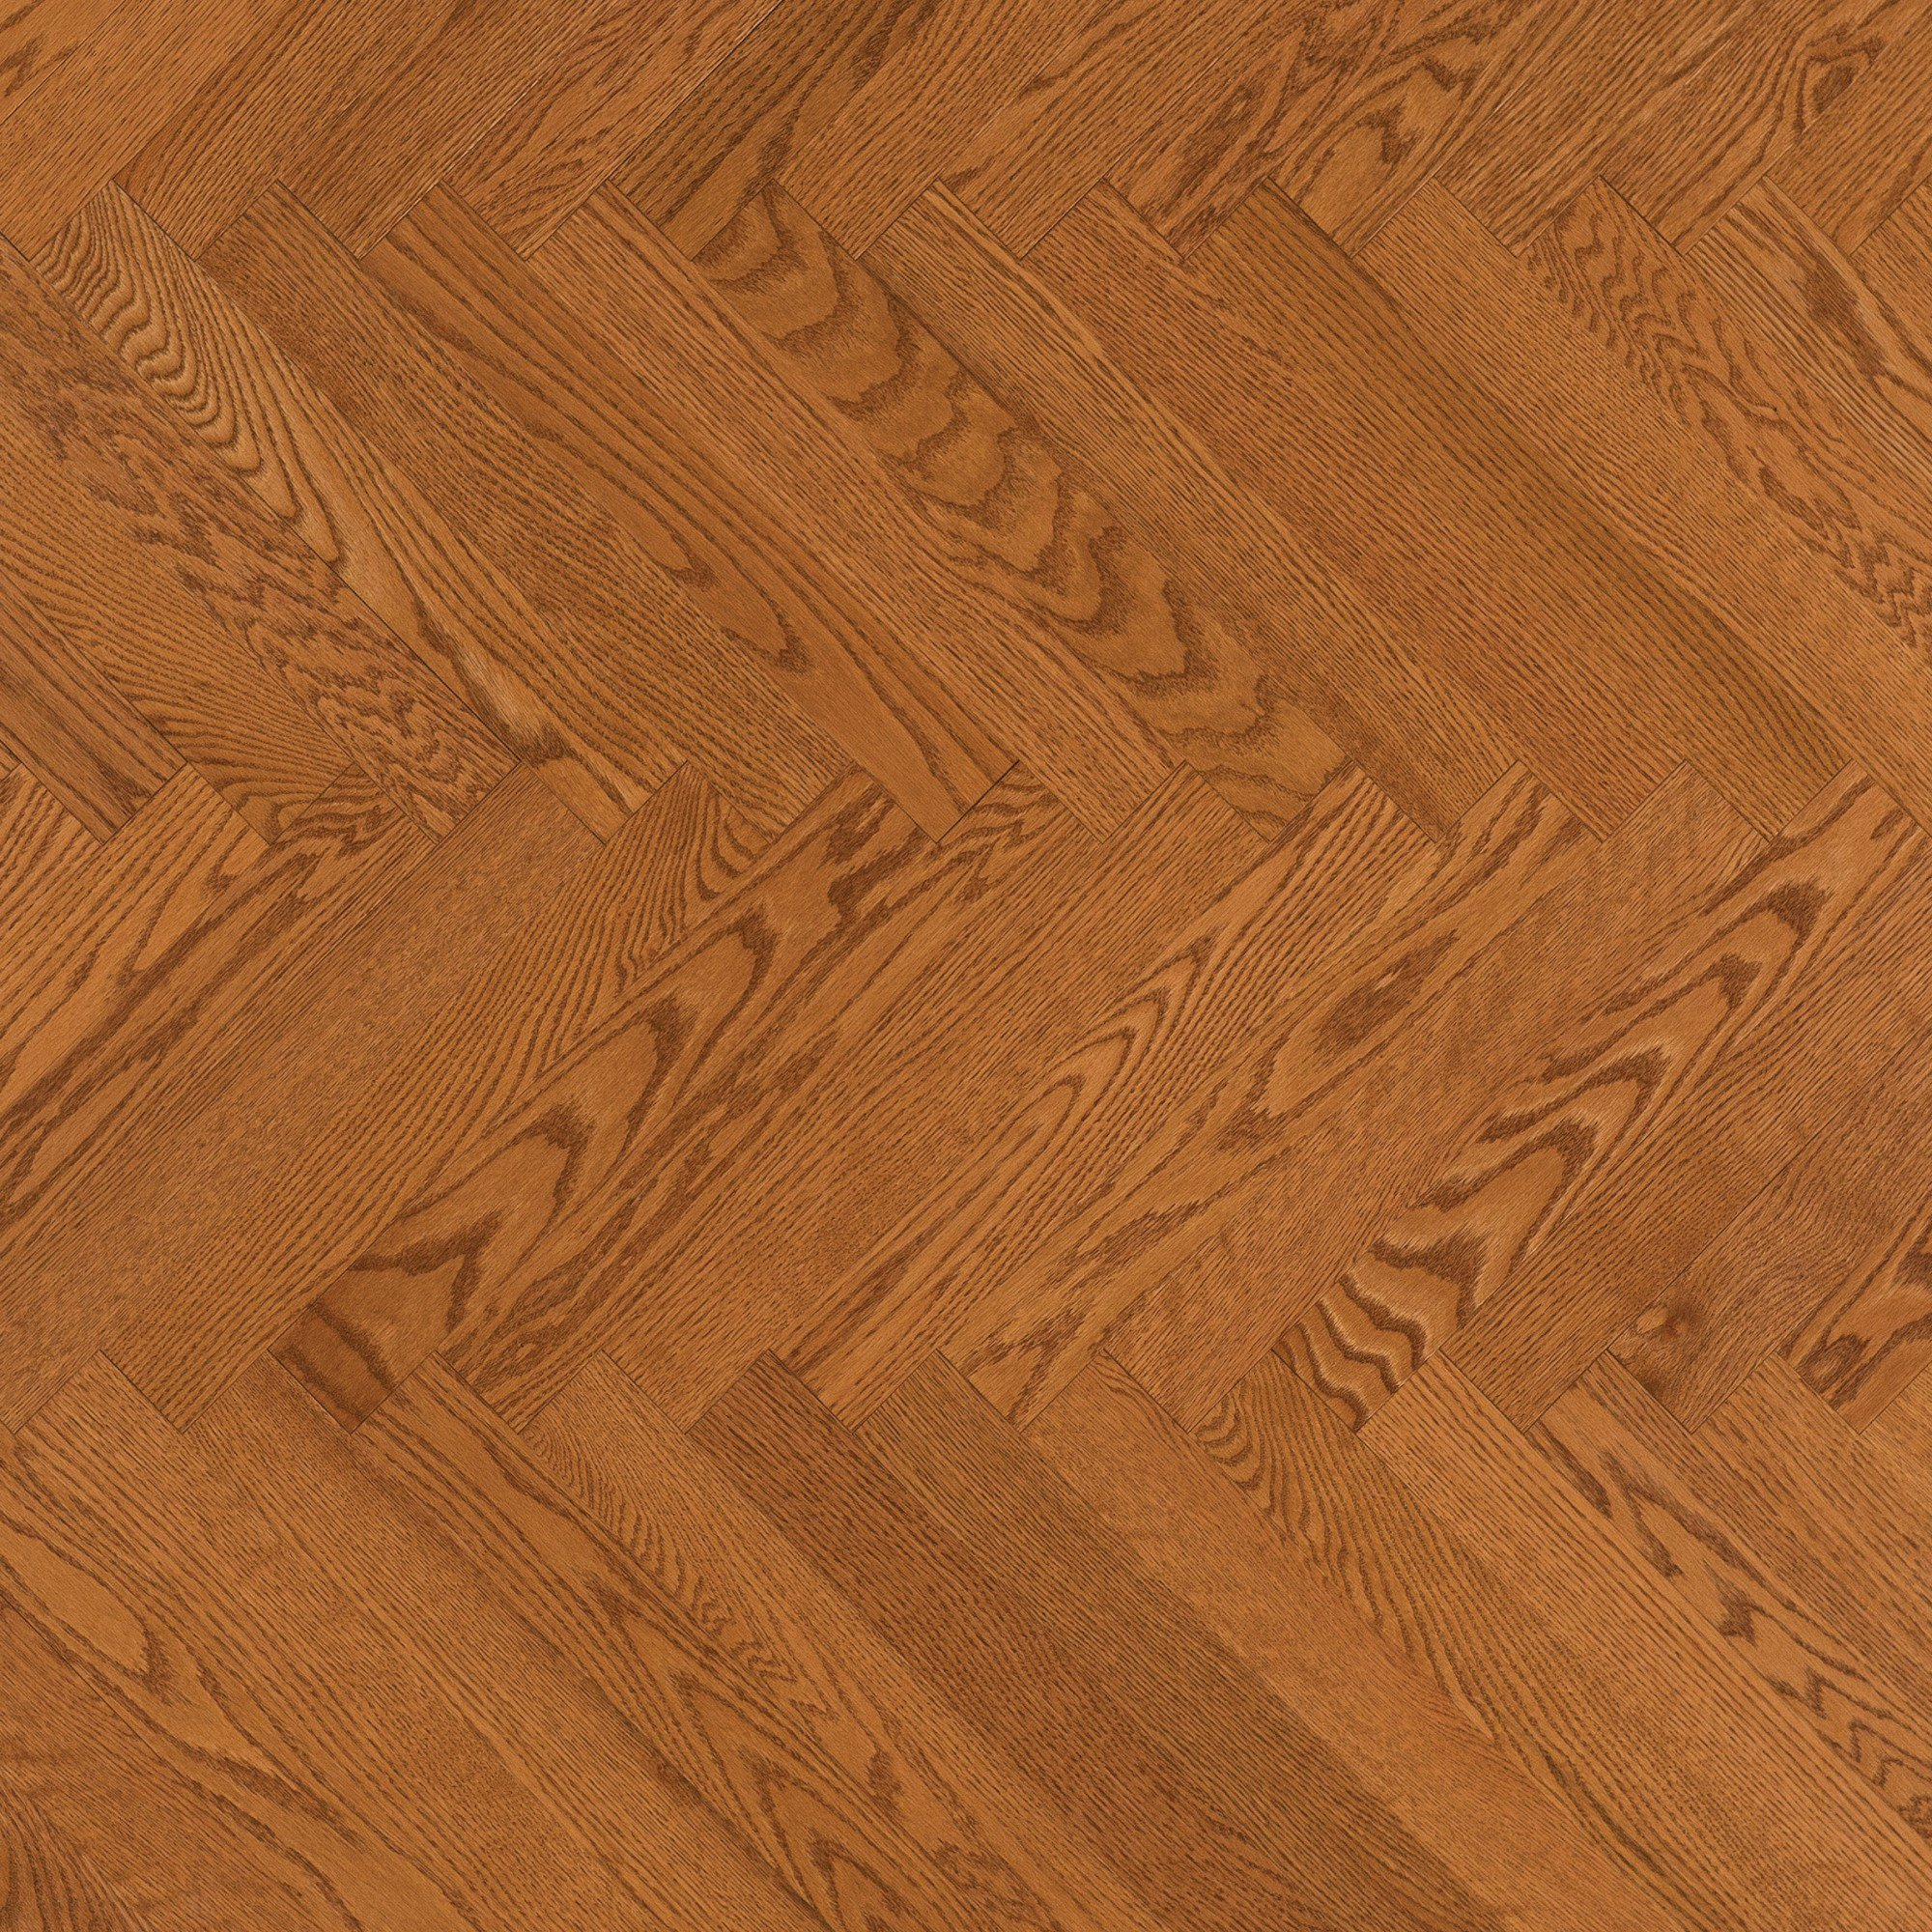 Herringbone red oak nevada mirage hardwood floors for Mirage wood floors